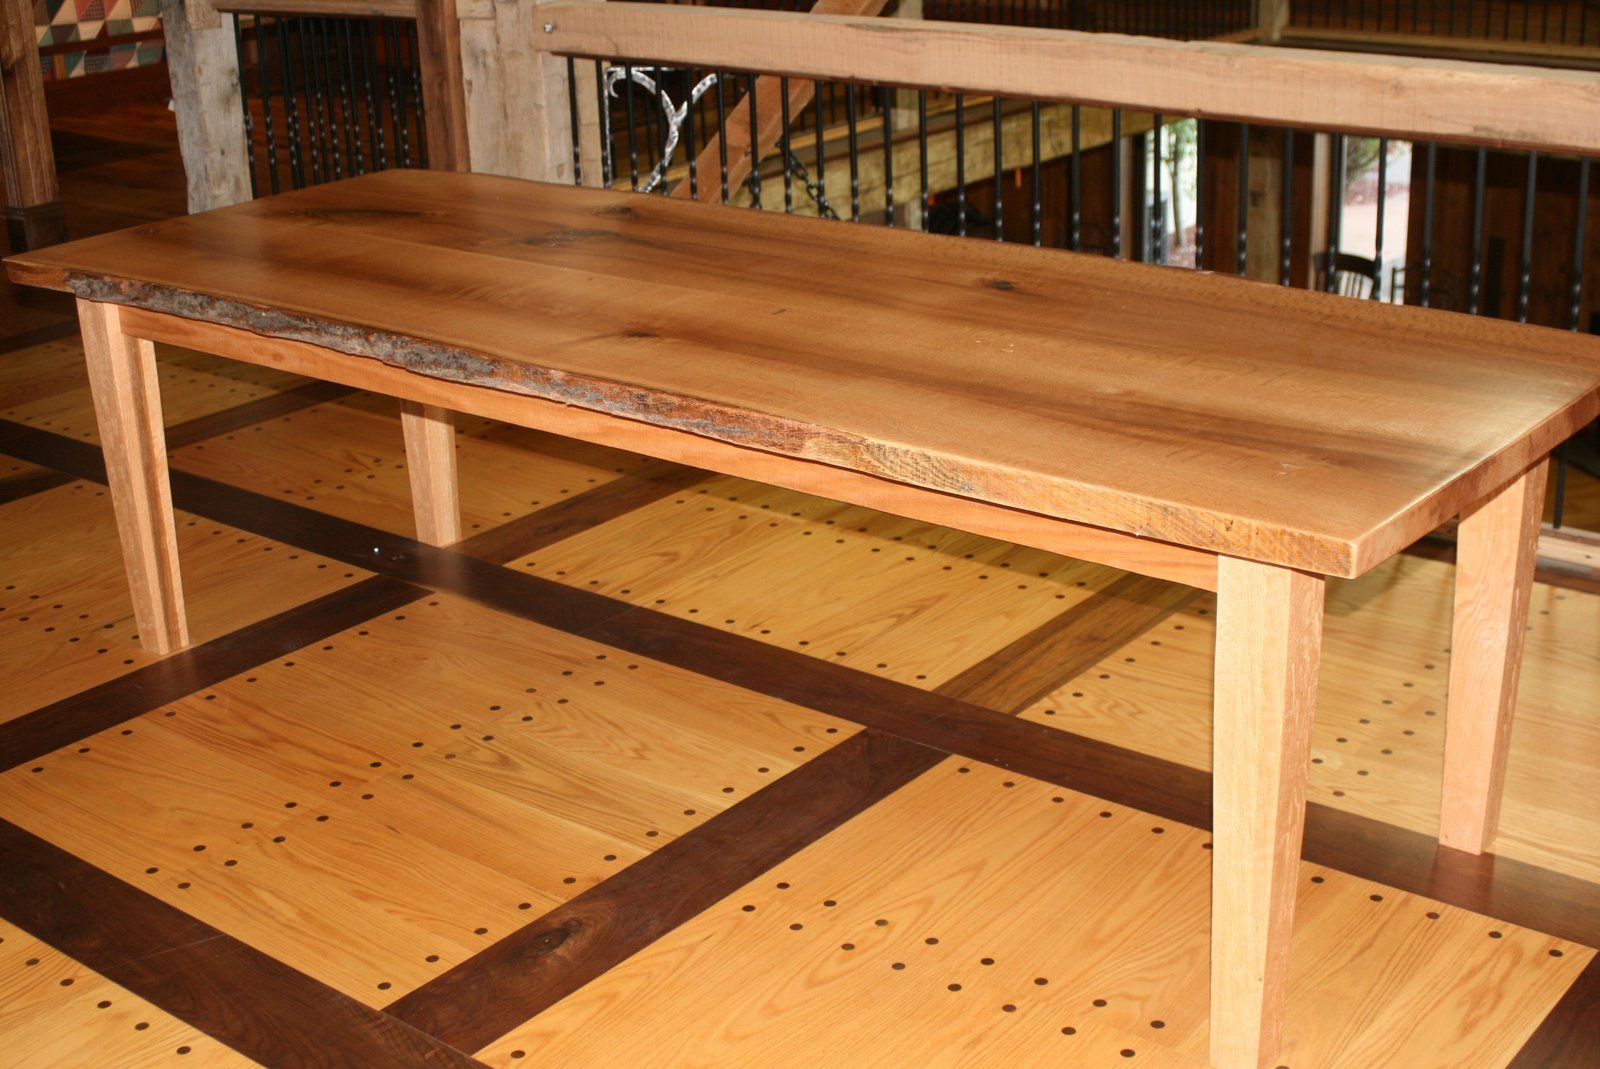 Live Edge Red Oak Farm Table with Hand Distressed Tapered Legs